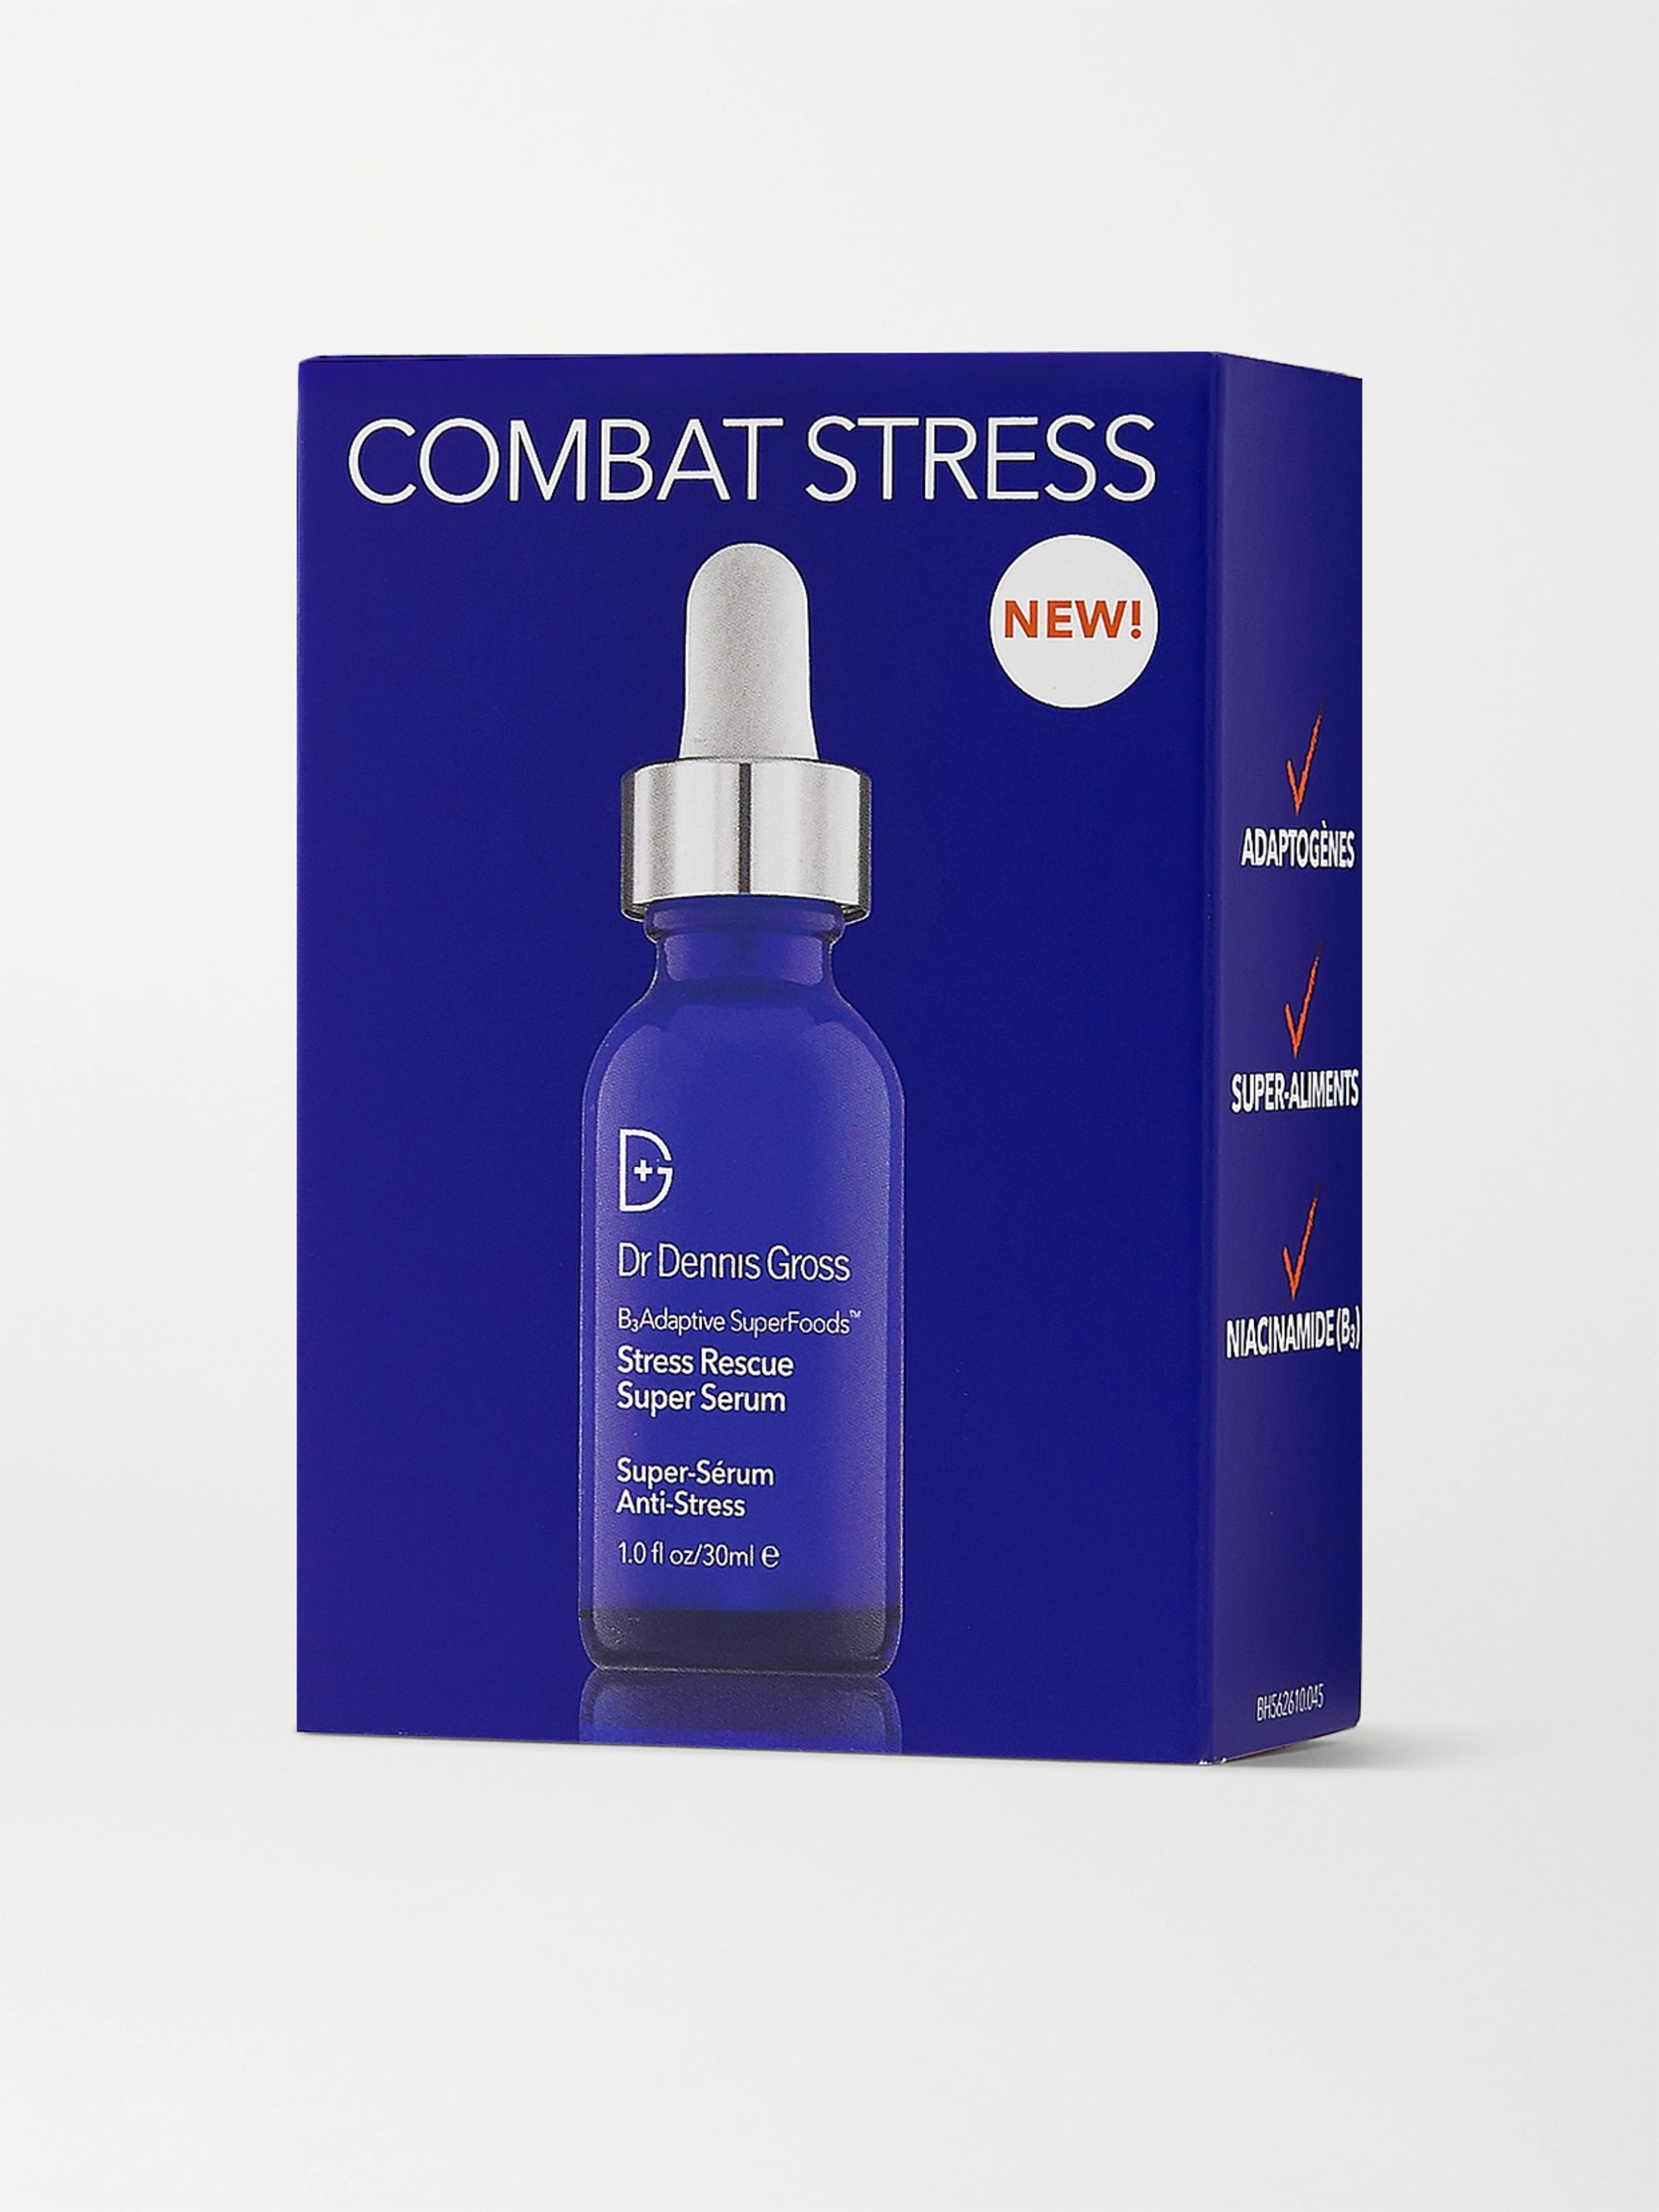 Dr. Dennis Gross Skincare B3 Adaptive SuperFoods Stress Rescue Super Serum, 30ml